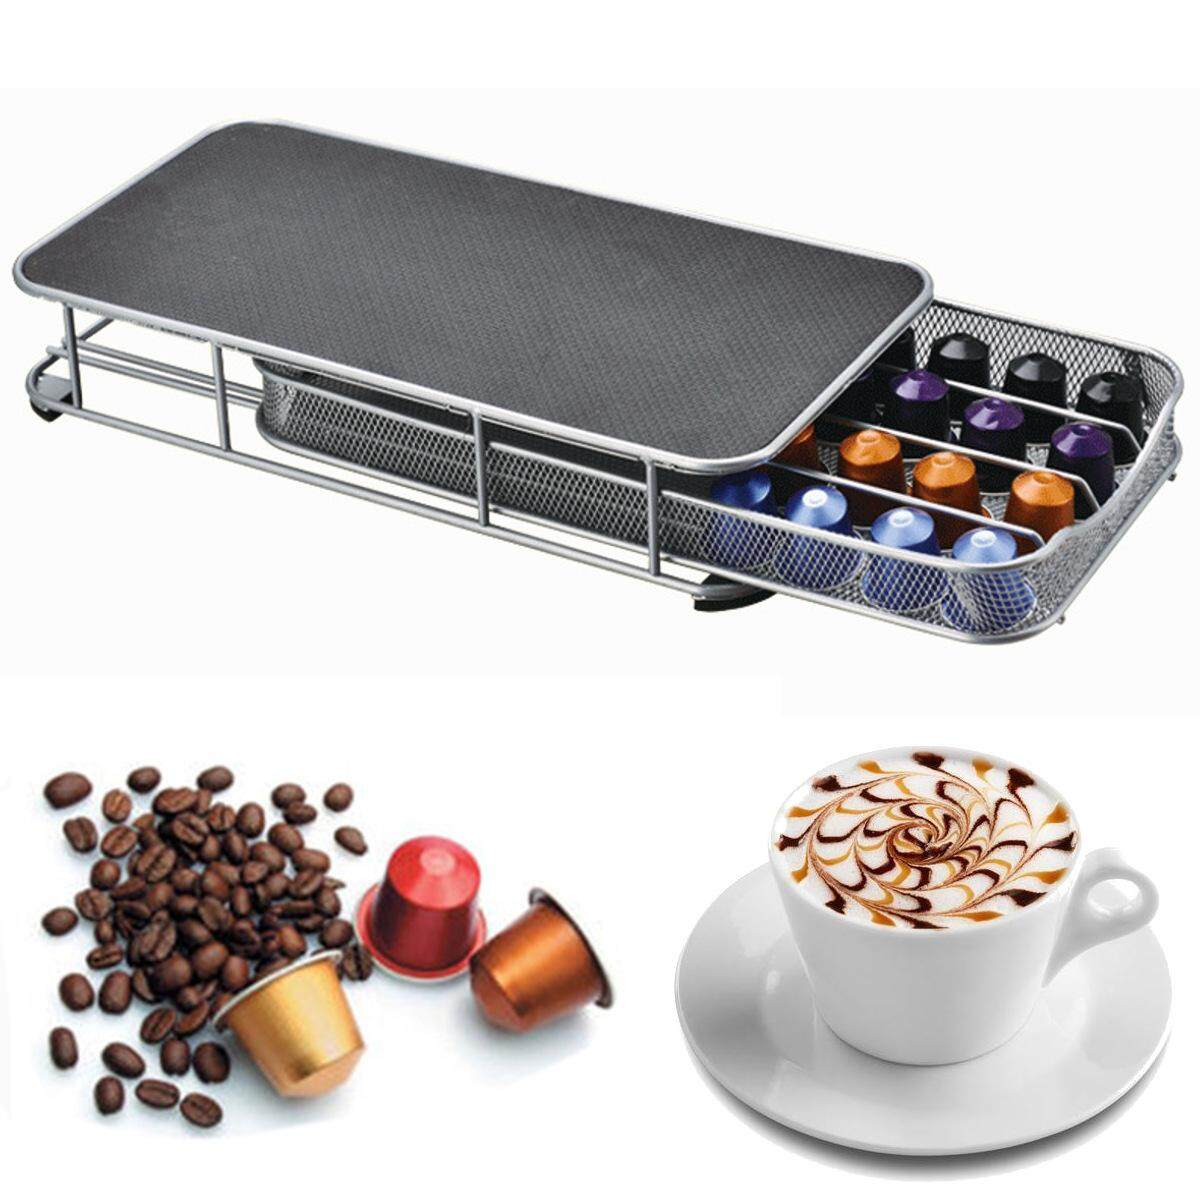 New Stainless Steel Anti Slip Stand 40 Nespresso Coffee Capsule Pod Holder Rack By Glimmer.